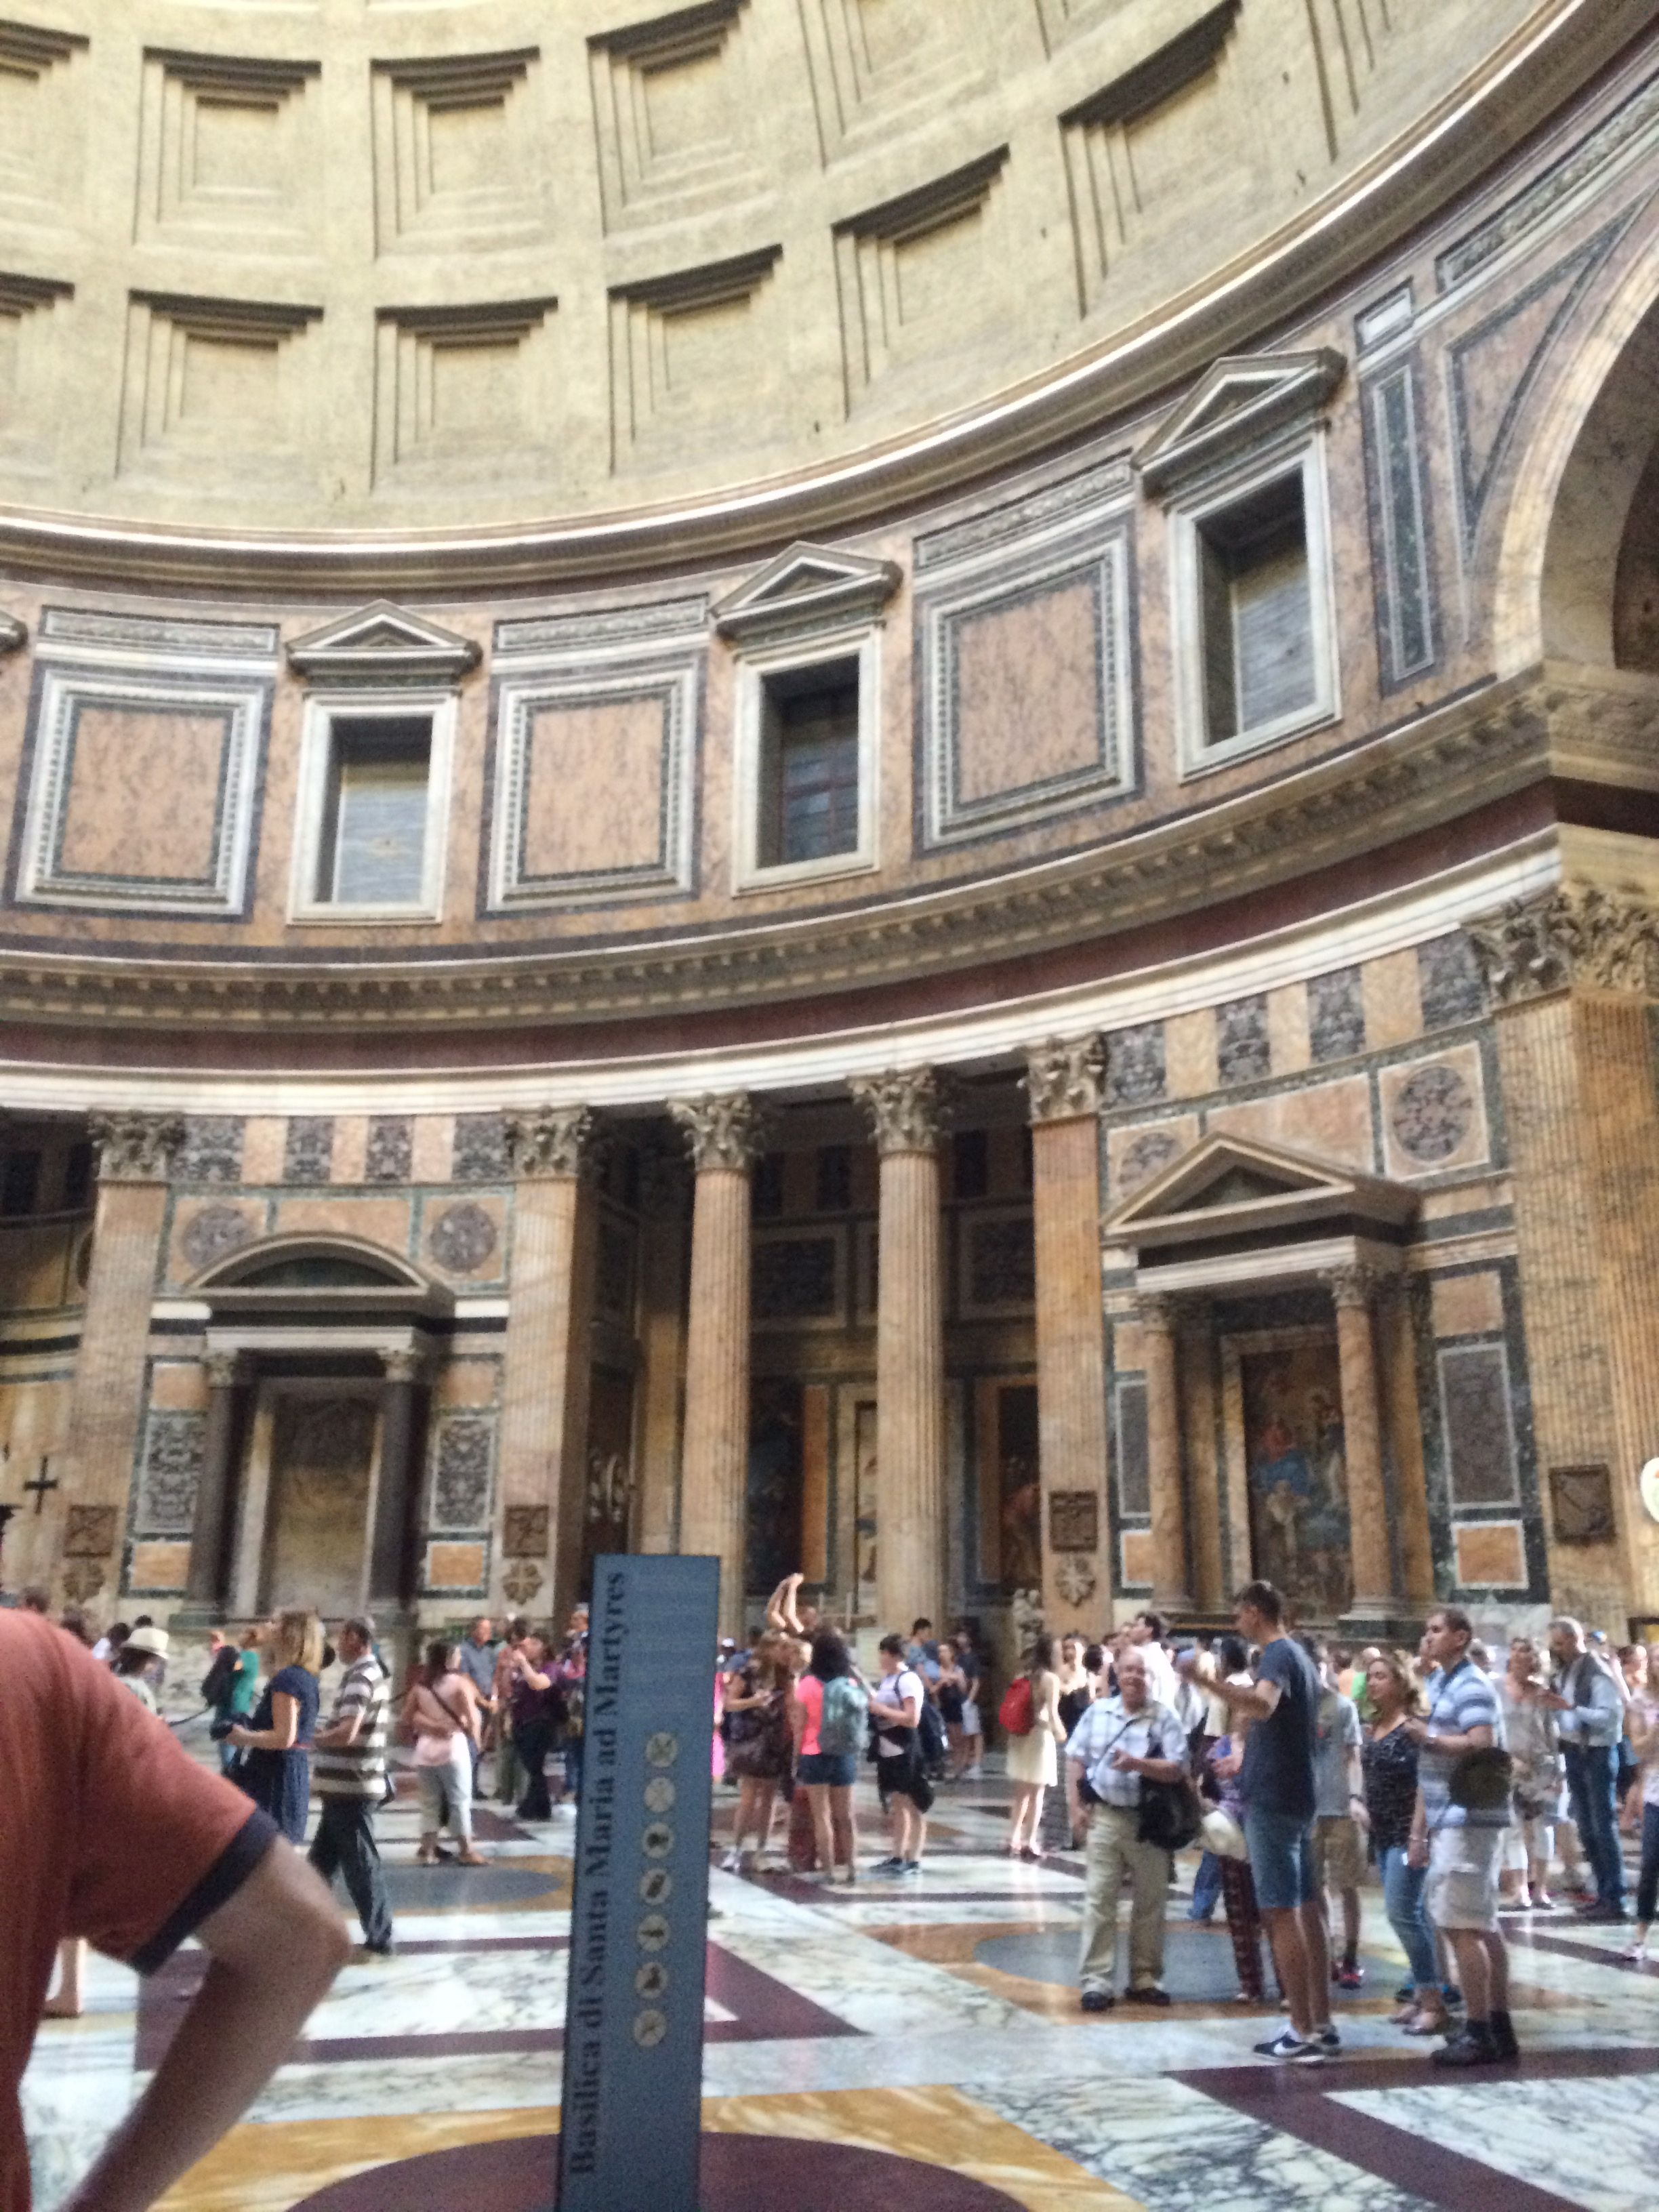 Another pic inside the Pantheon